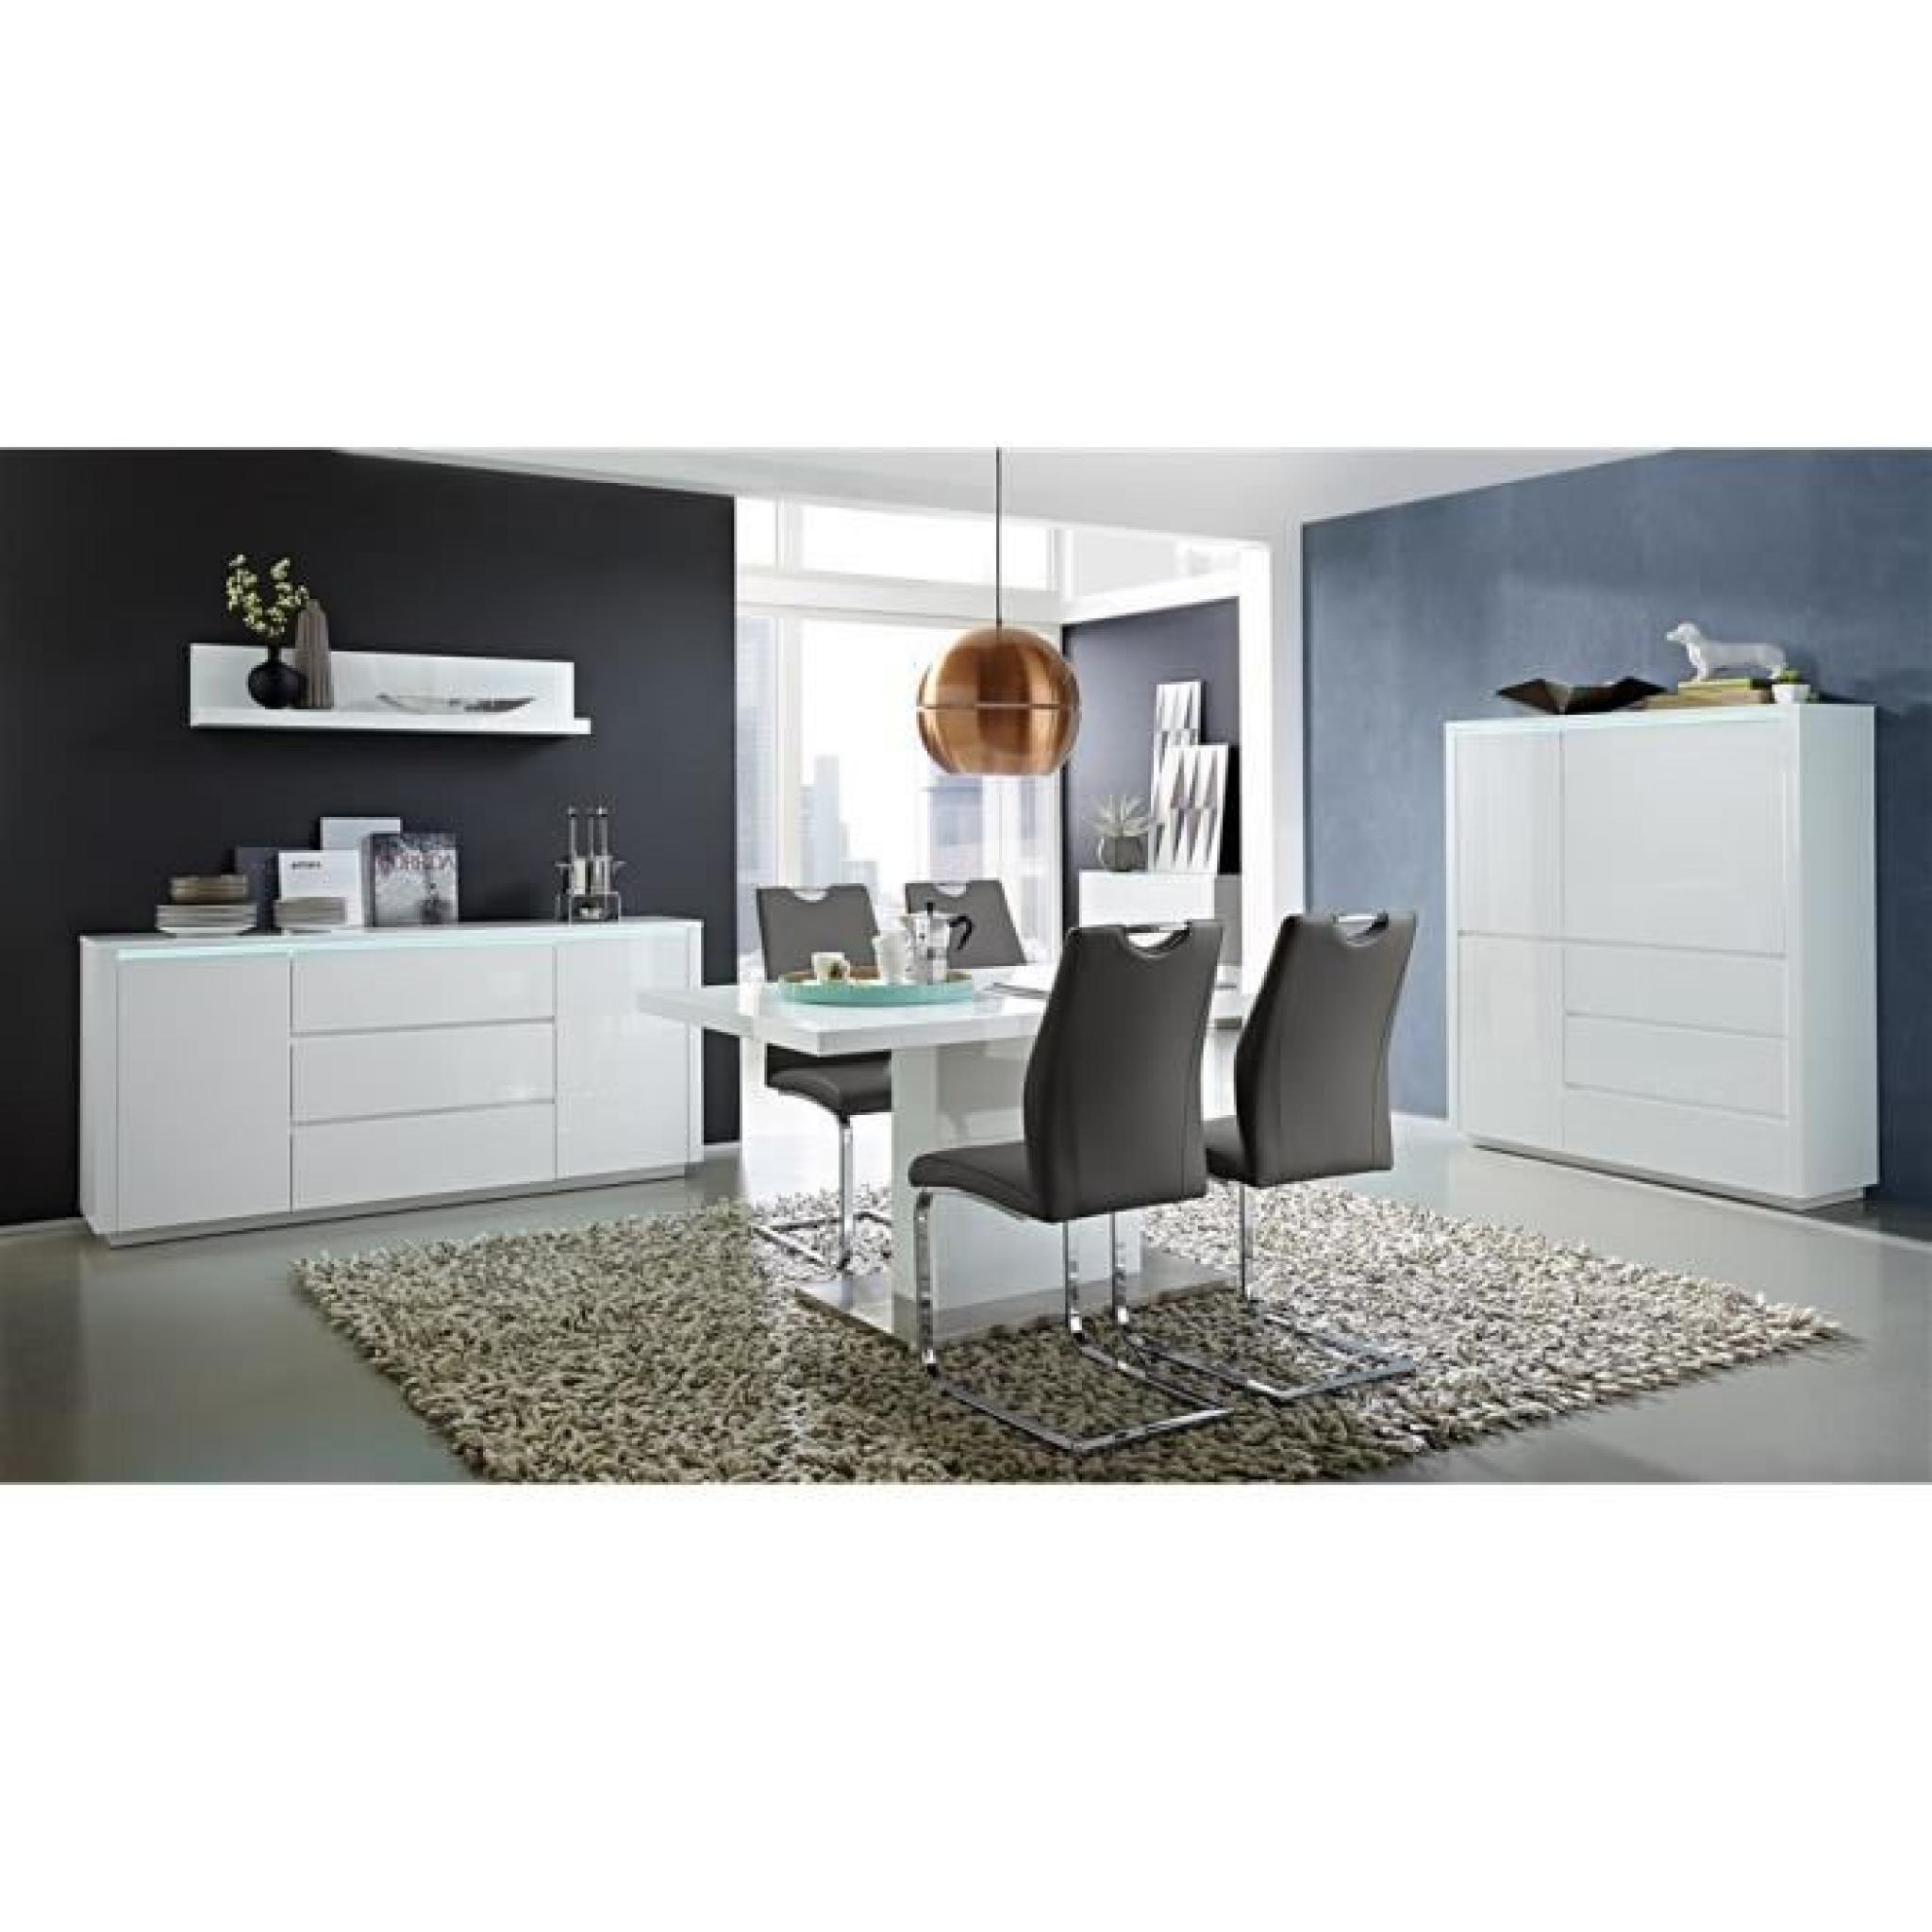 buffet haut eclairage led chicago blanc laqu achat vente buffet pas cher couleur et. Black Bedroom Furniture Sets. Home Design Ideas